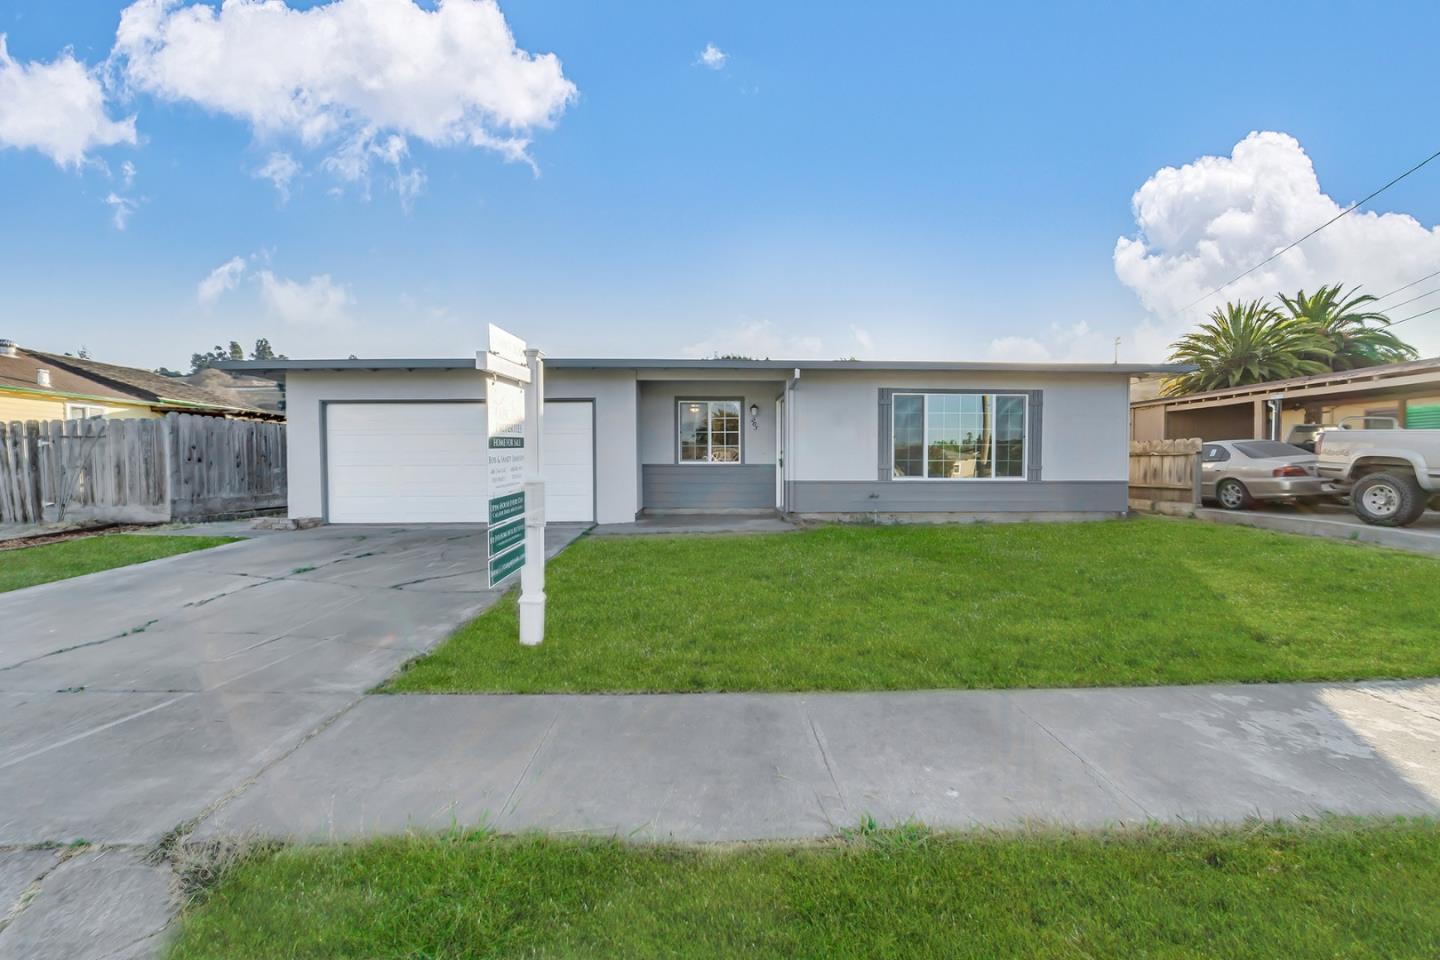 Detail Gallery Image 1 of 16 For 205 6th St, San Juan Bautista, CA 95045 - 3 Beds | 1 Baths